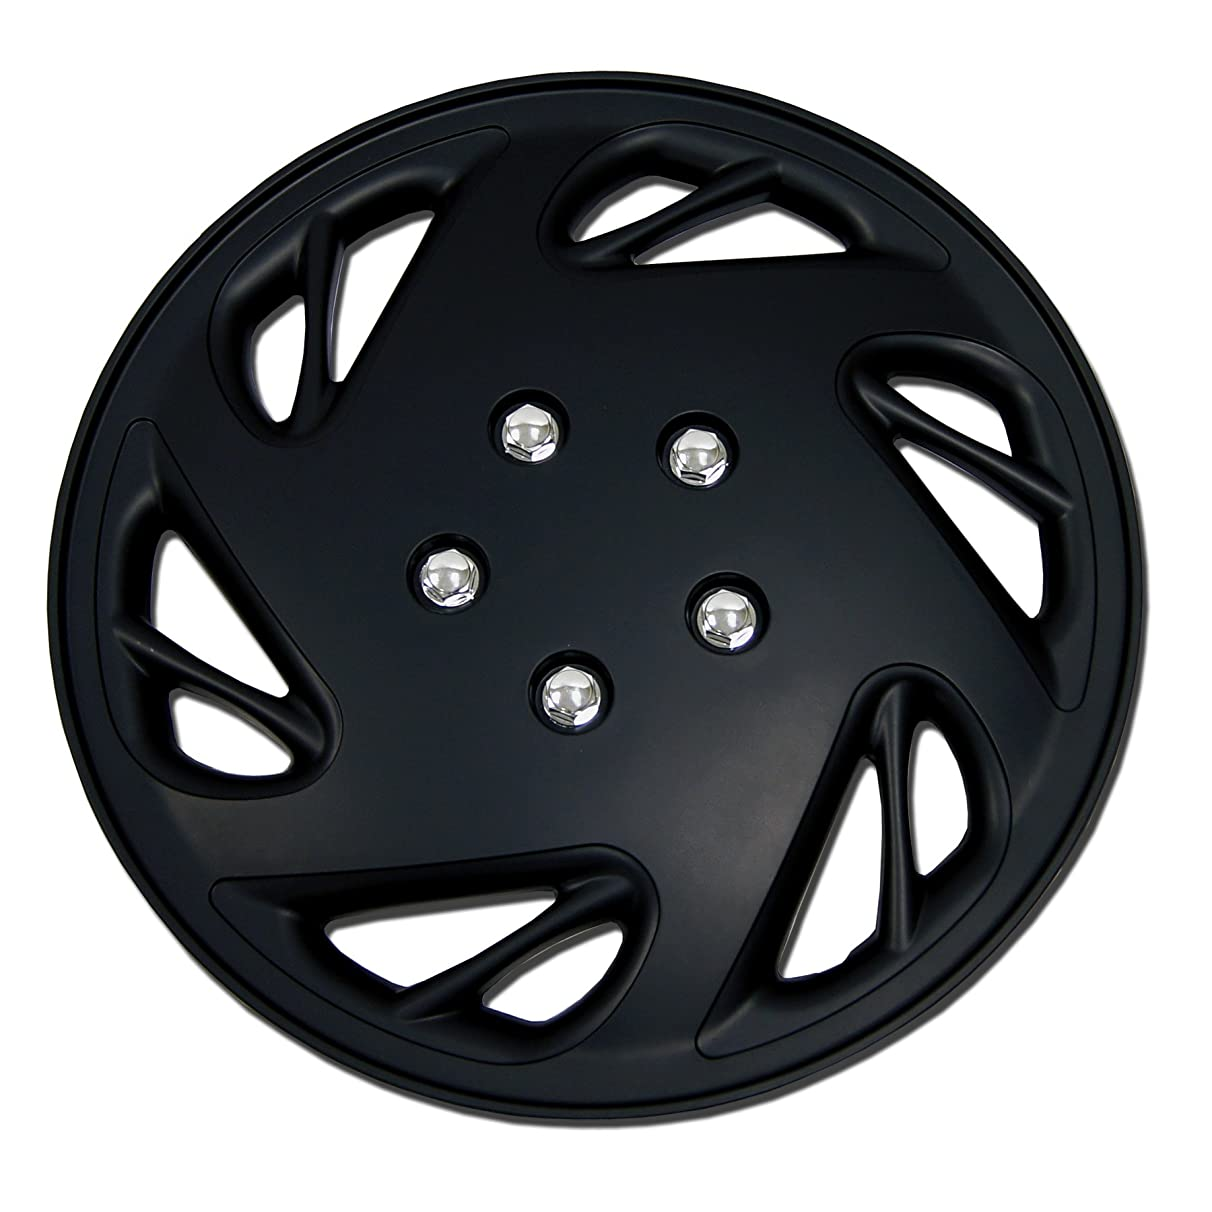 TuningPros WC-17-9054-B 17-Inches Pop On Type Improved Hubcaps Wheel Skin Cover Matte Black Set of 4